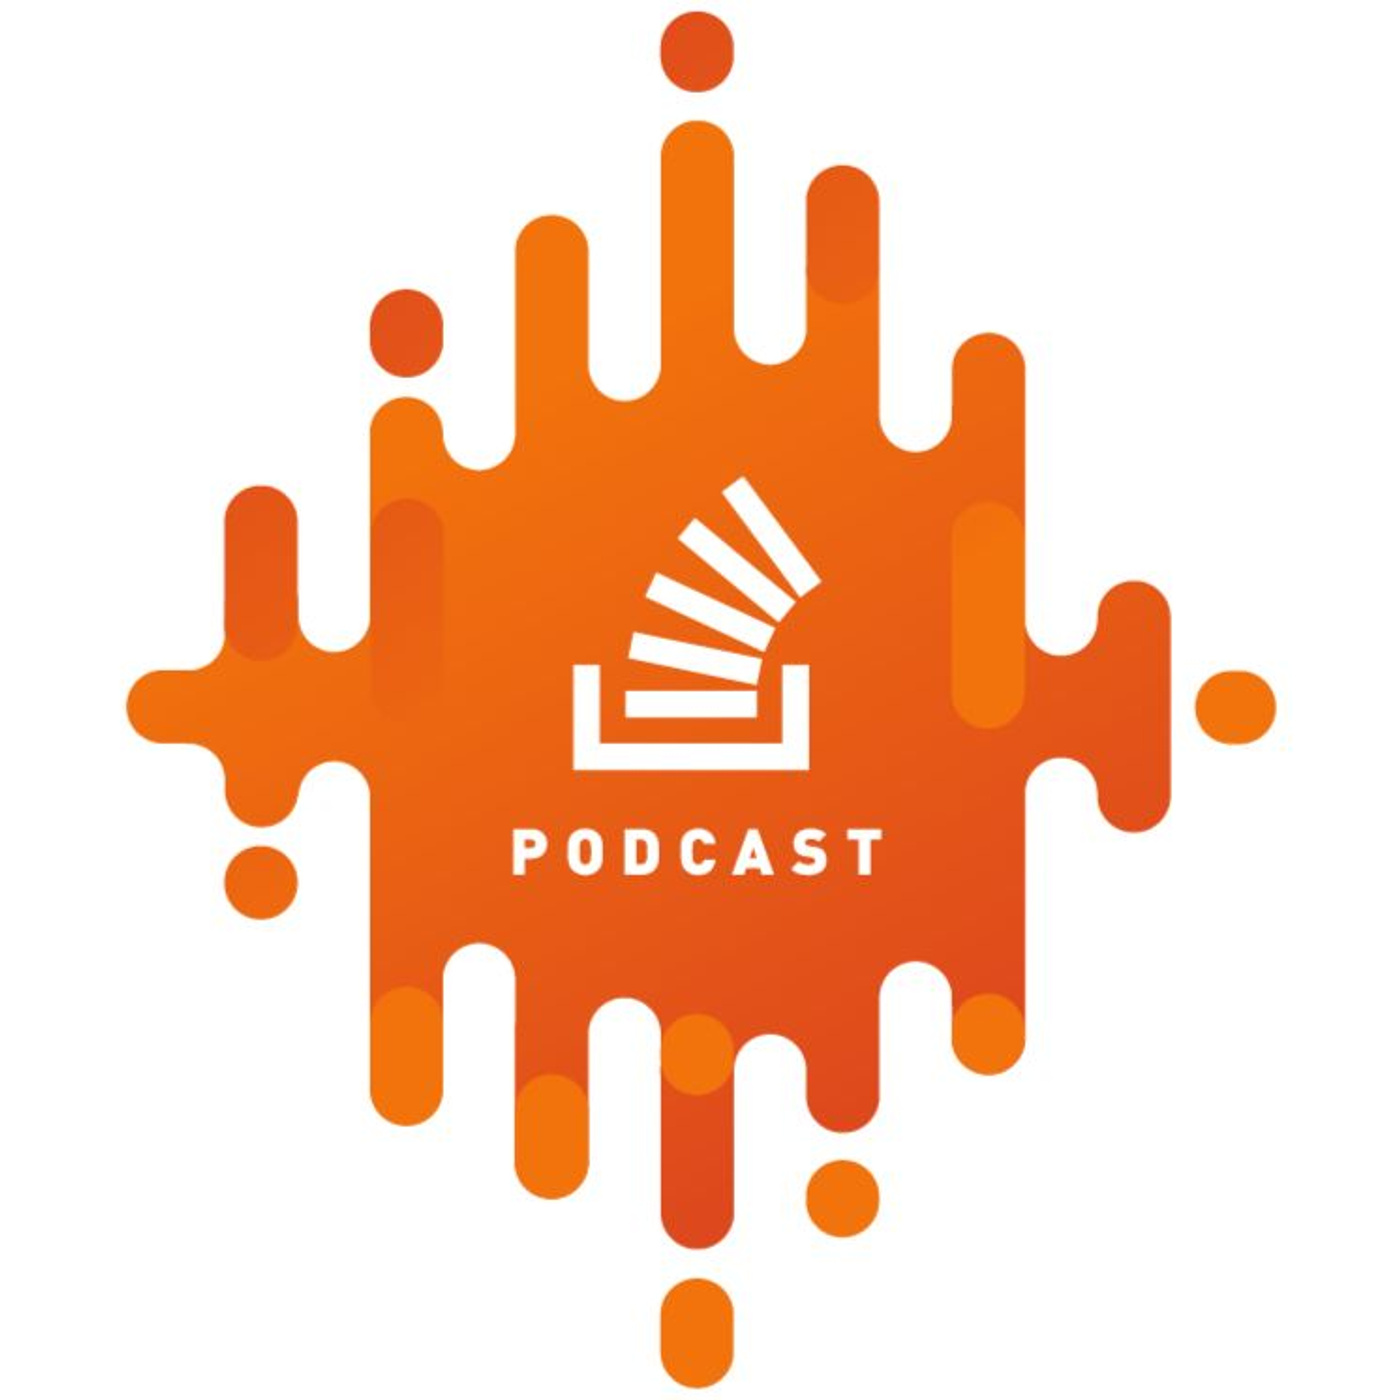 Podcast #116 - What is Technology? Do we even know?